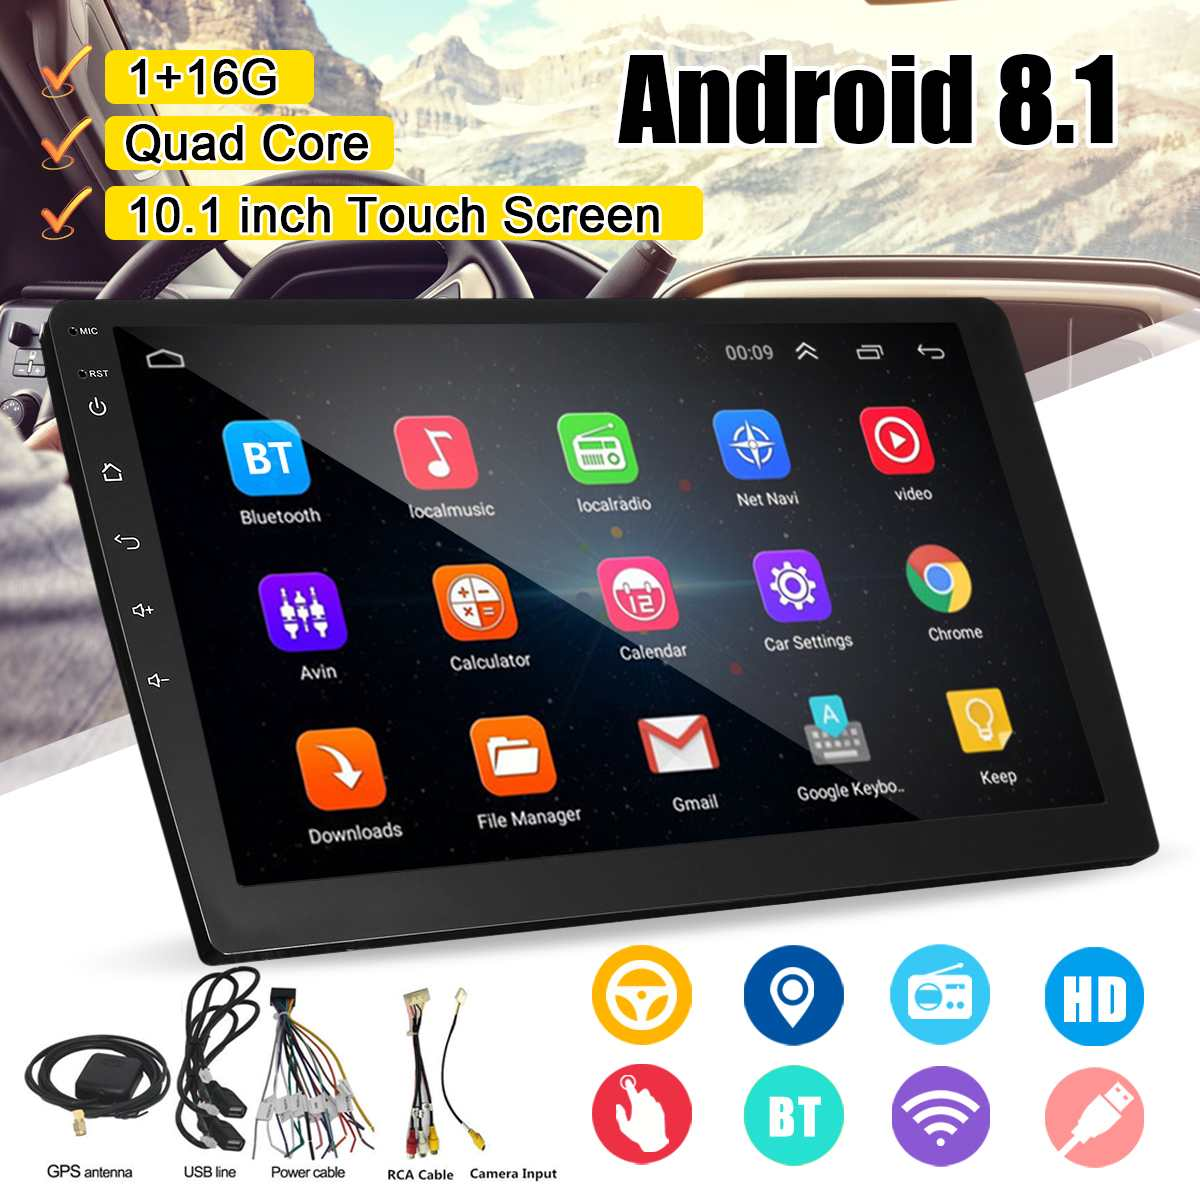 <font><b>10.1</b></font> Inch <font><b>Android</b></font> 8.1 Quad Core 1+16G Car Multimedia Player Car Stereo 2DIN bluetooth WIFI GPS Nav <font><b>Radio</b></font> Video MP5 Player image